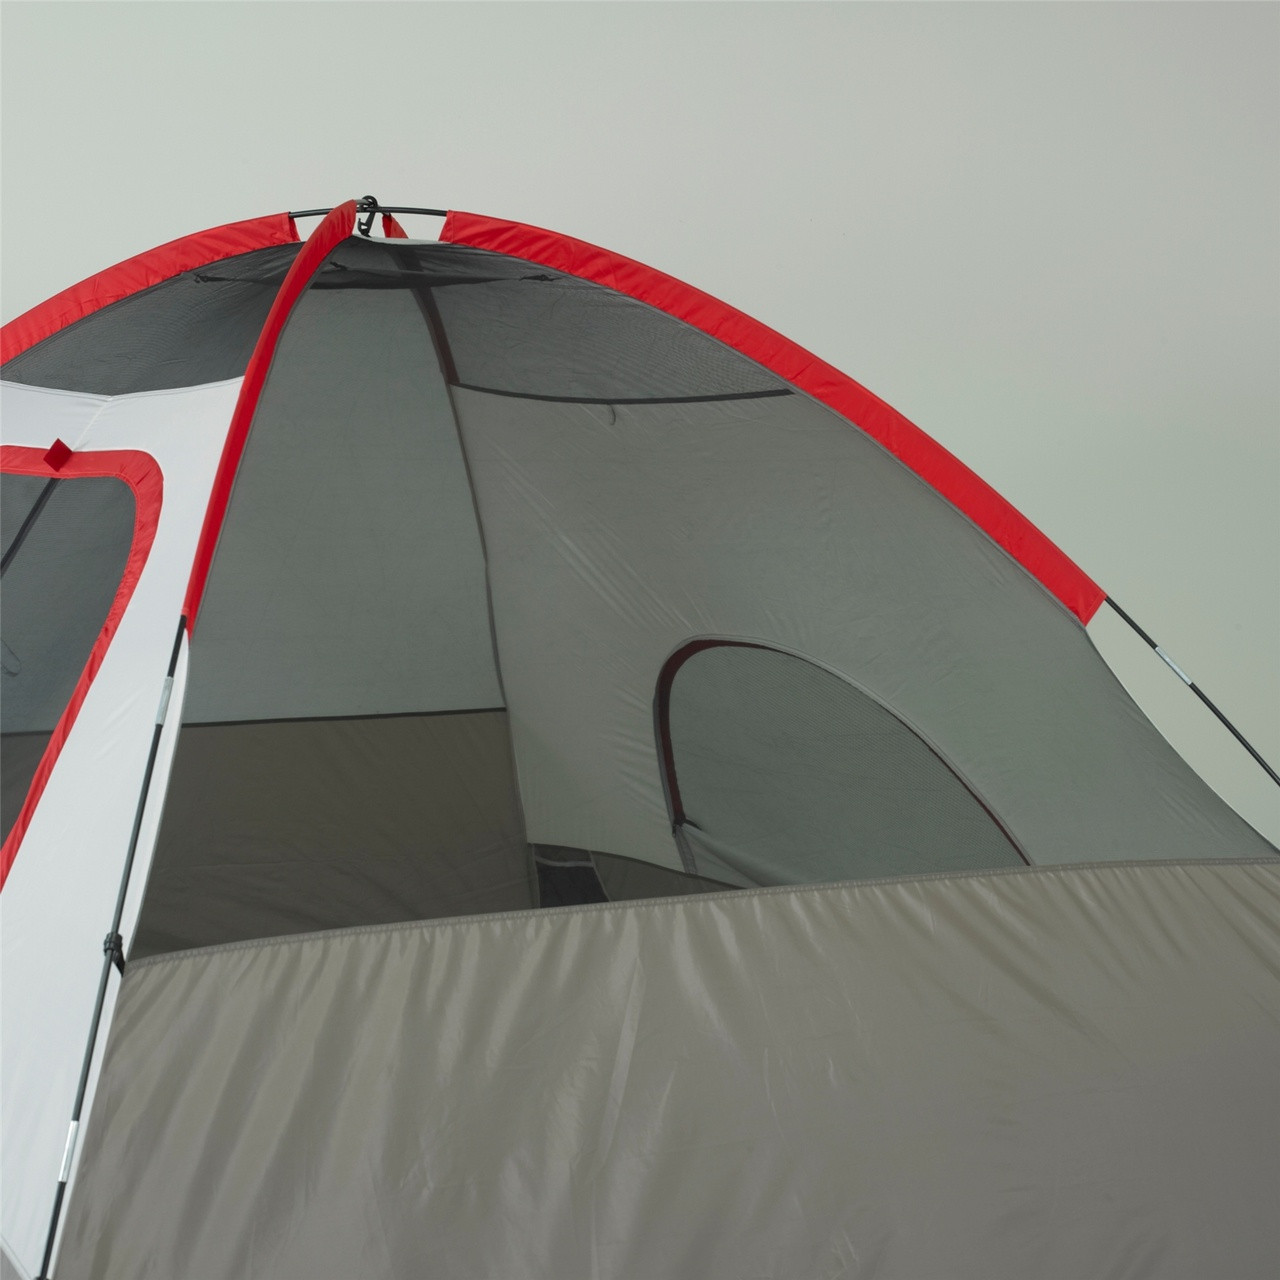 Side view of the Wenzel Pine Ridge 5 tent setup without the rain fly on showing the interior of the tent